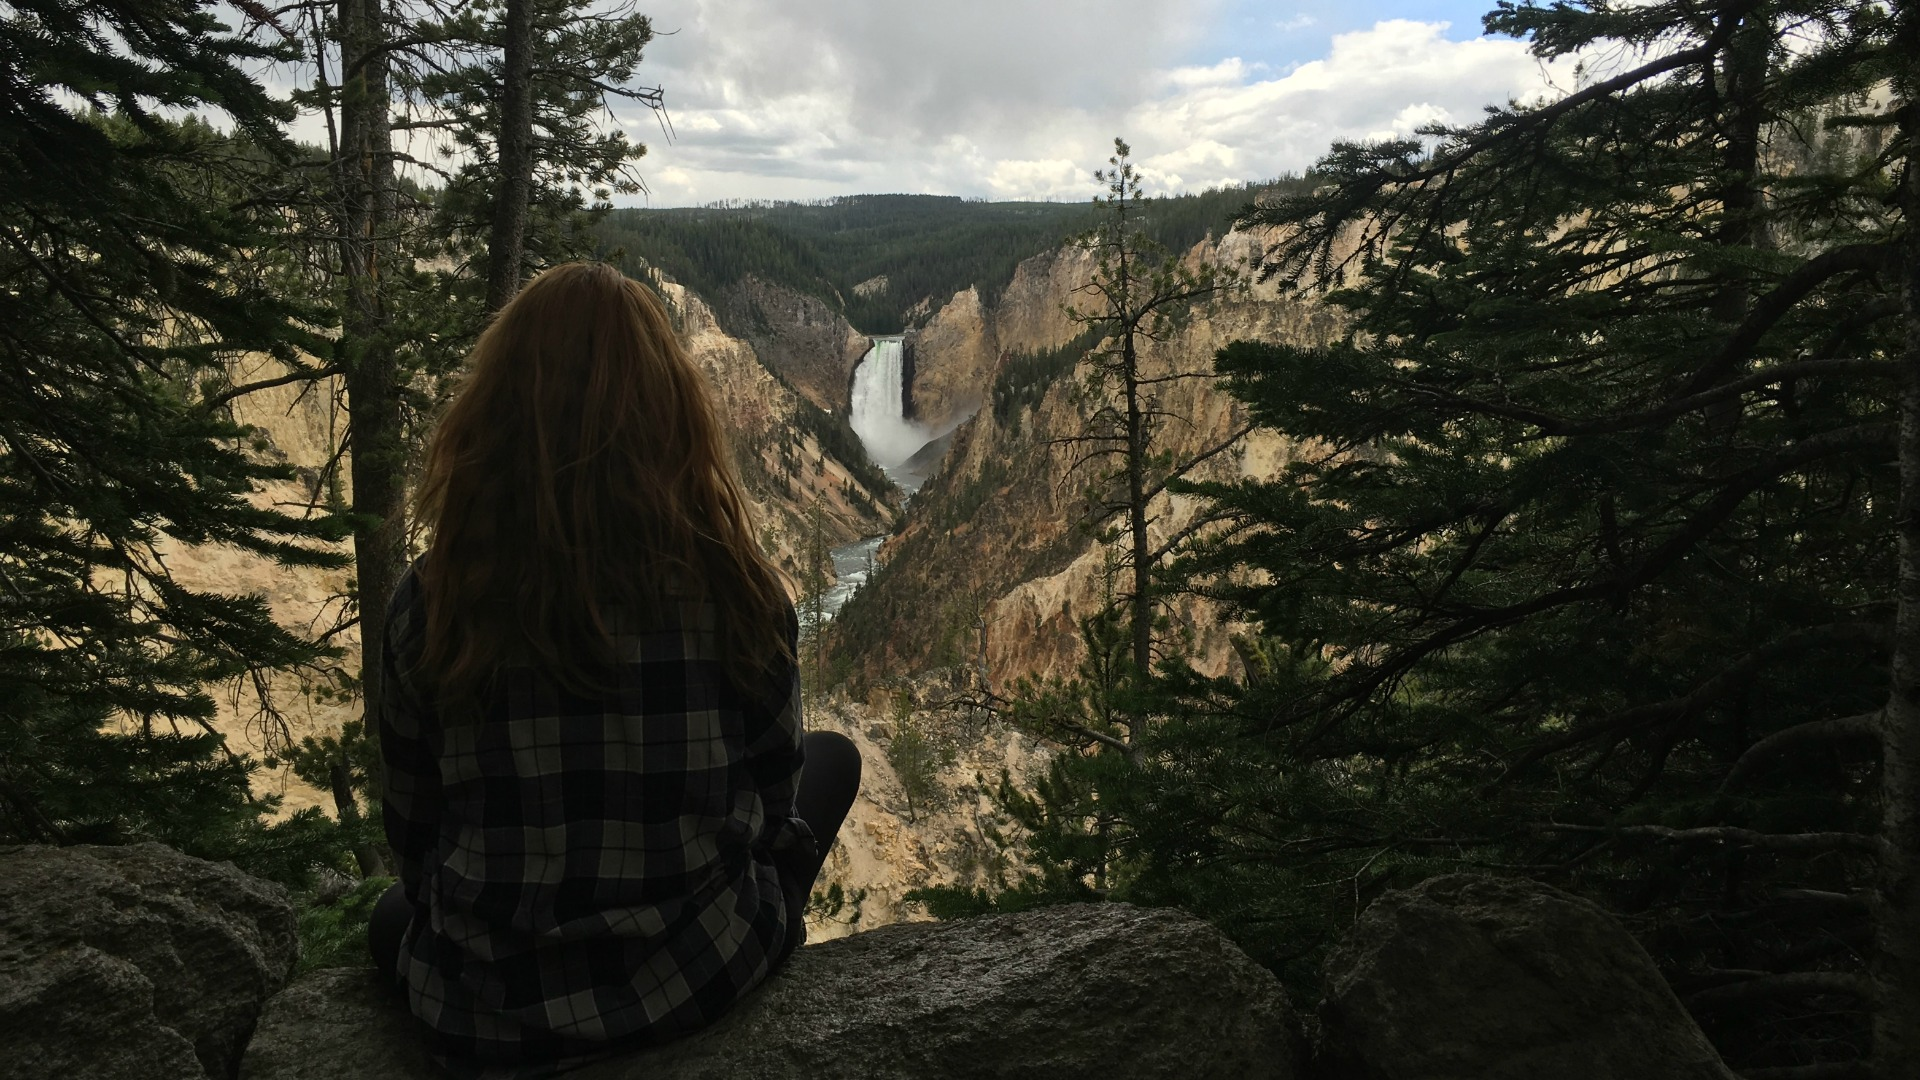 Camryn Grimes (Mariah Copeland) became one with nature during a trip to Yellowstone National Park.